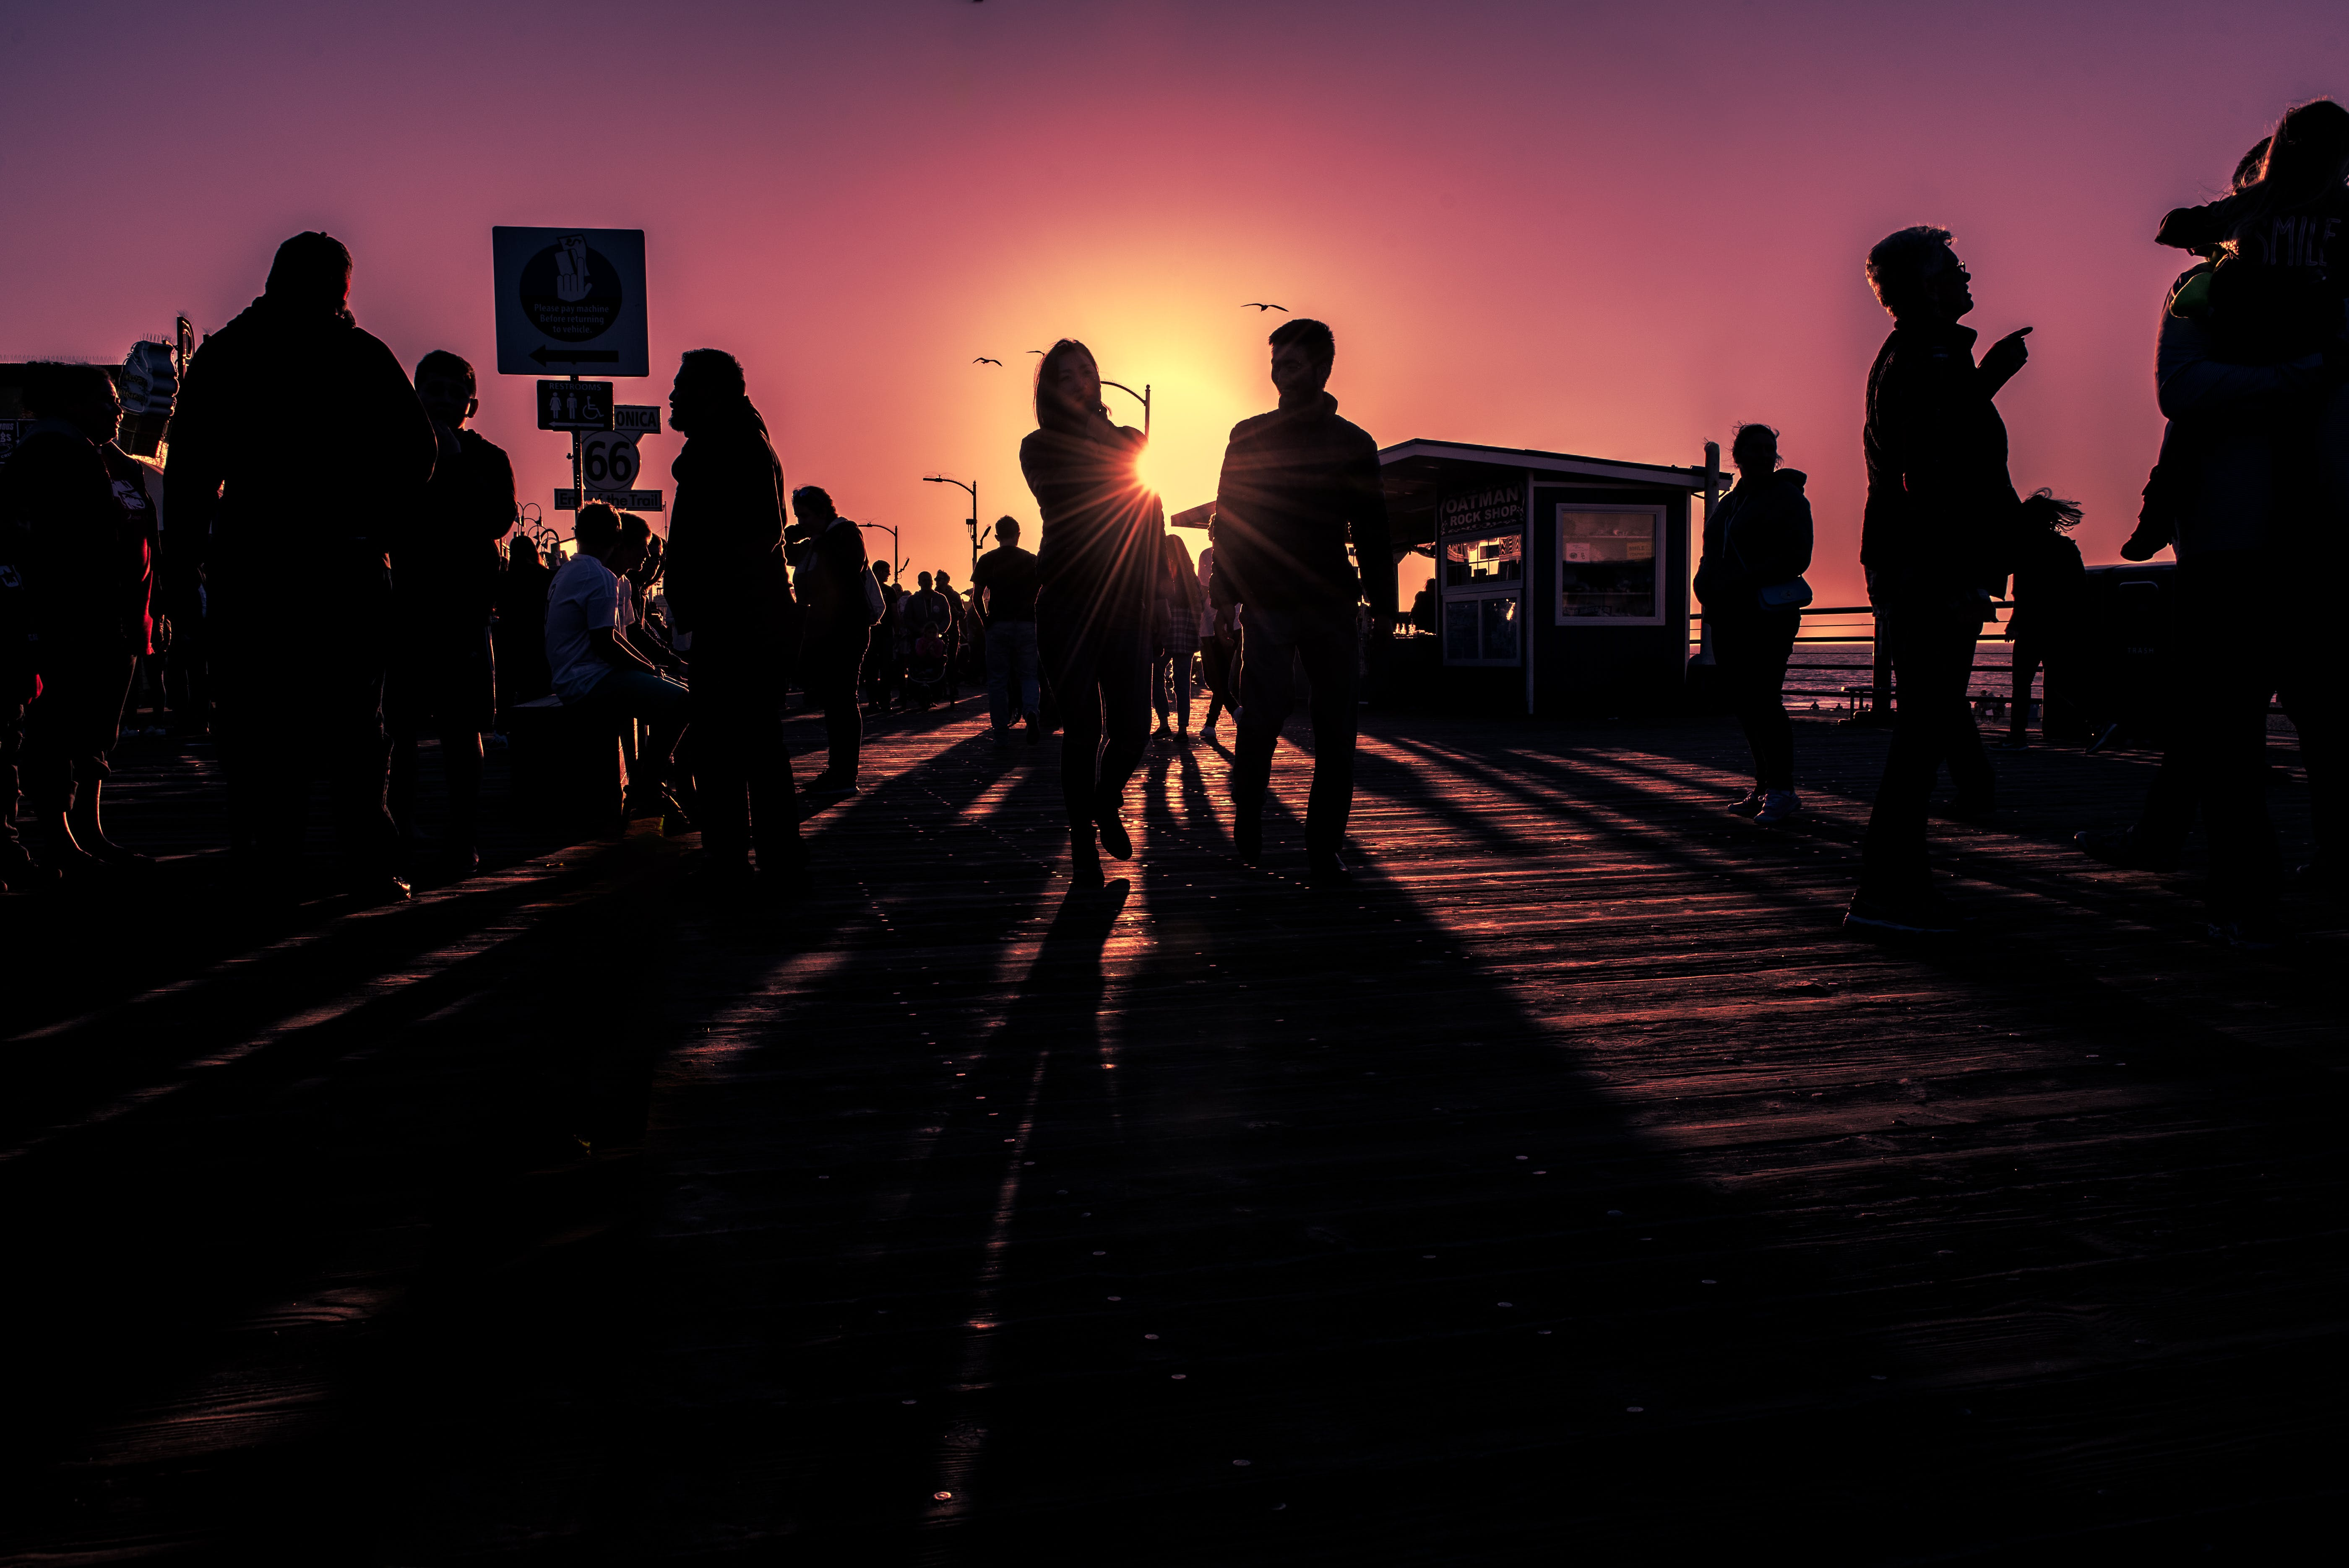 Free stock photo of light, dawn, sunset, people